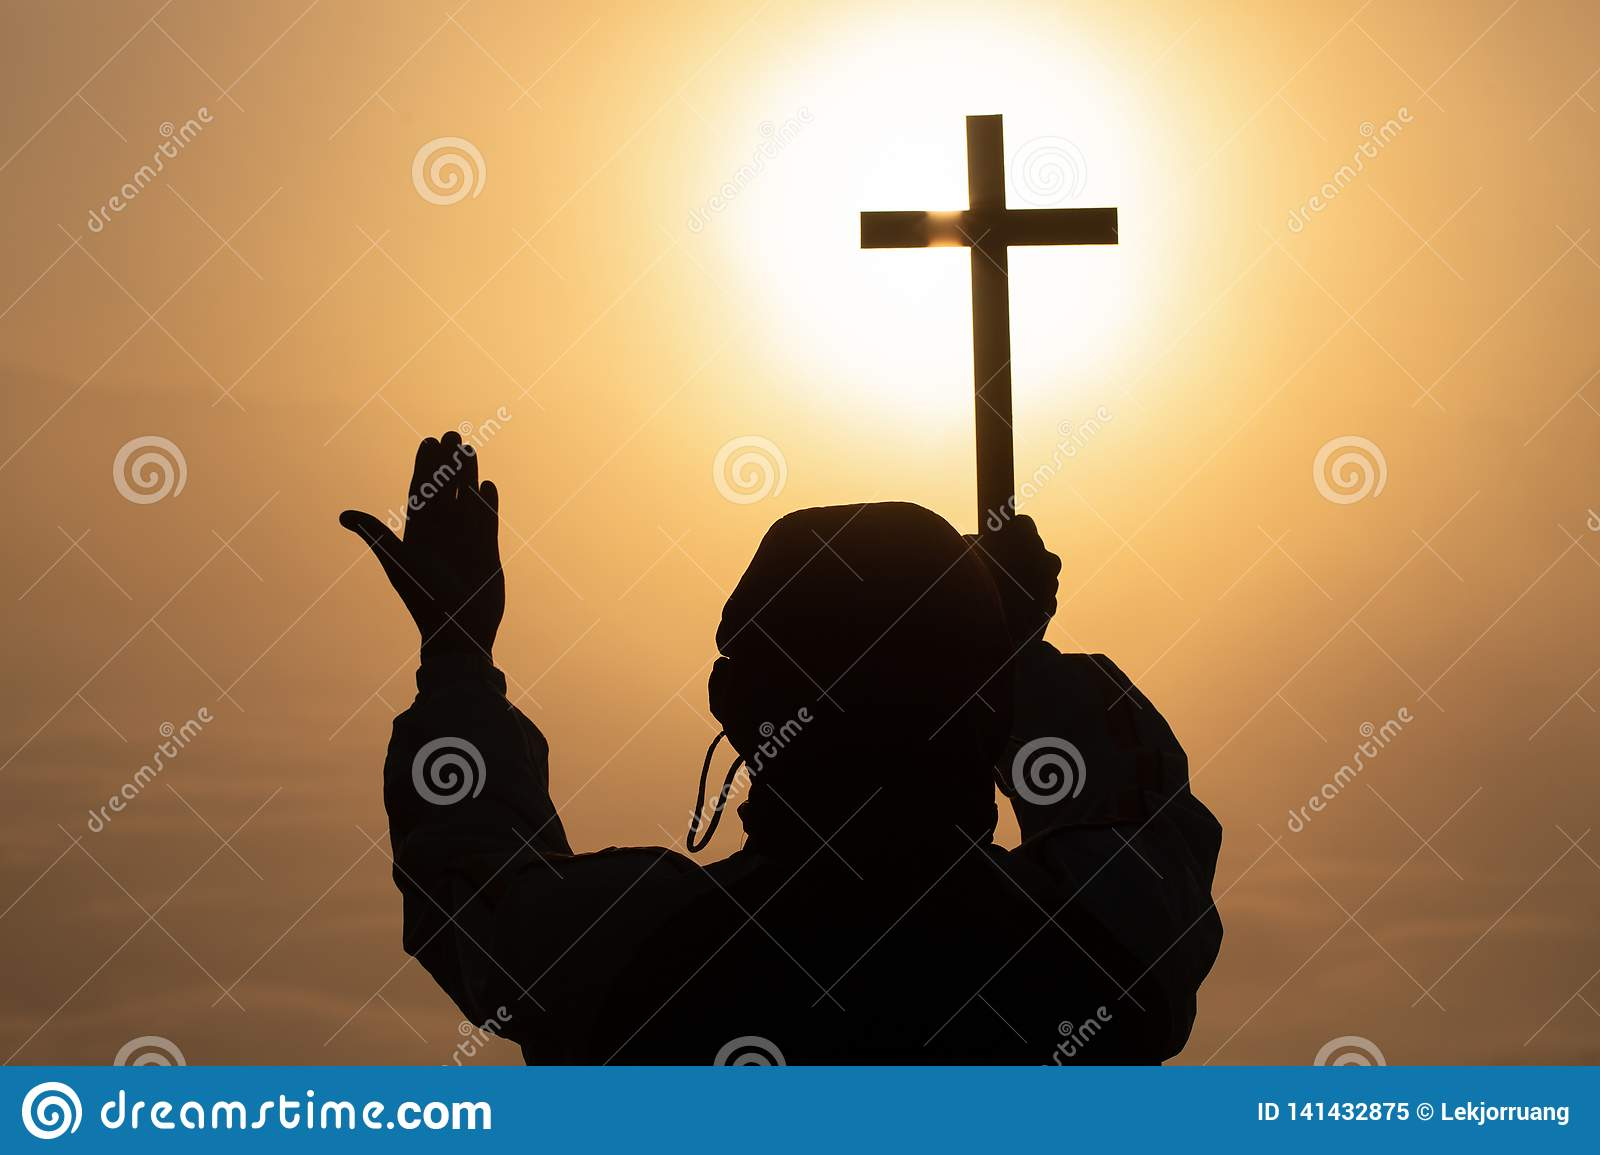 Silhouette of christian Man holding a cross, cross in hands praying for blessing from god on sunlight background, hope concept